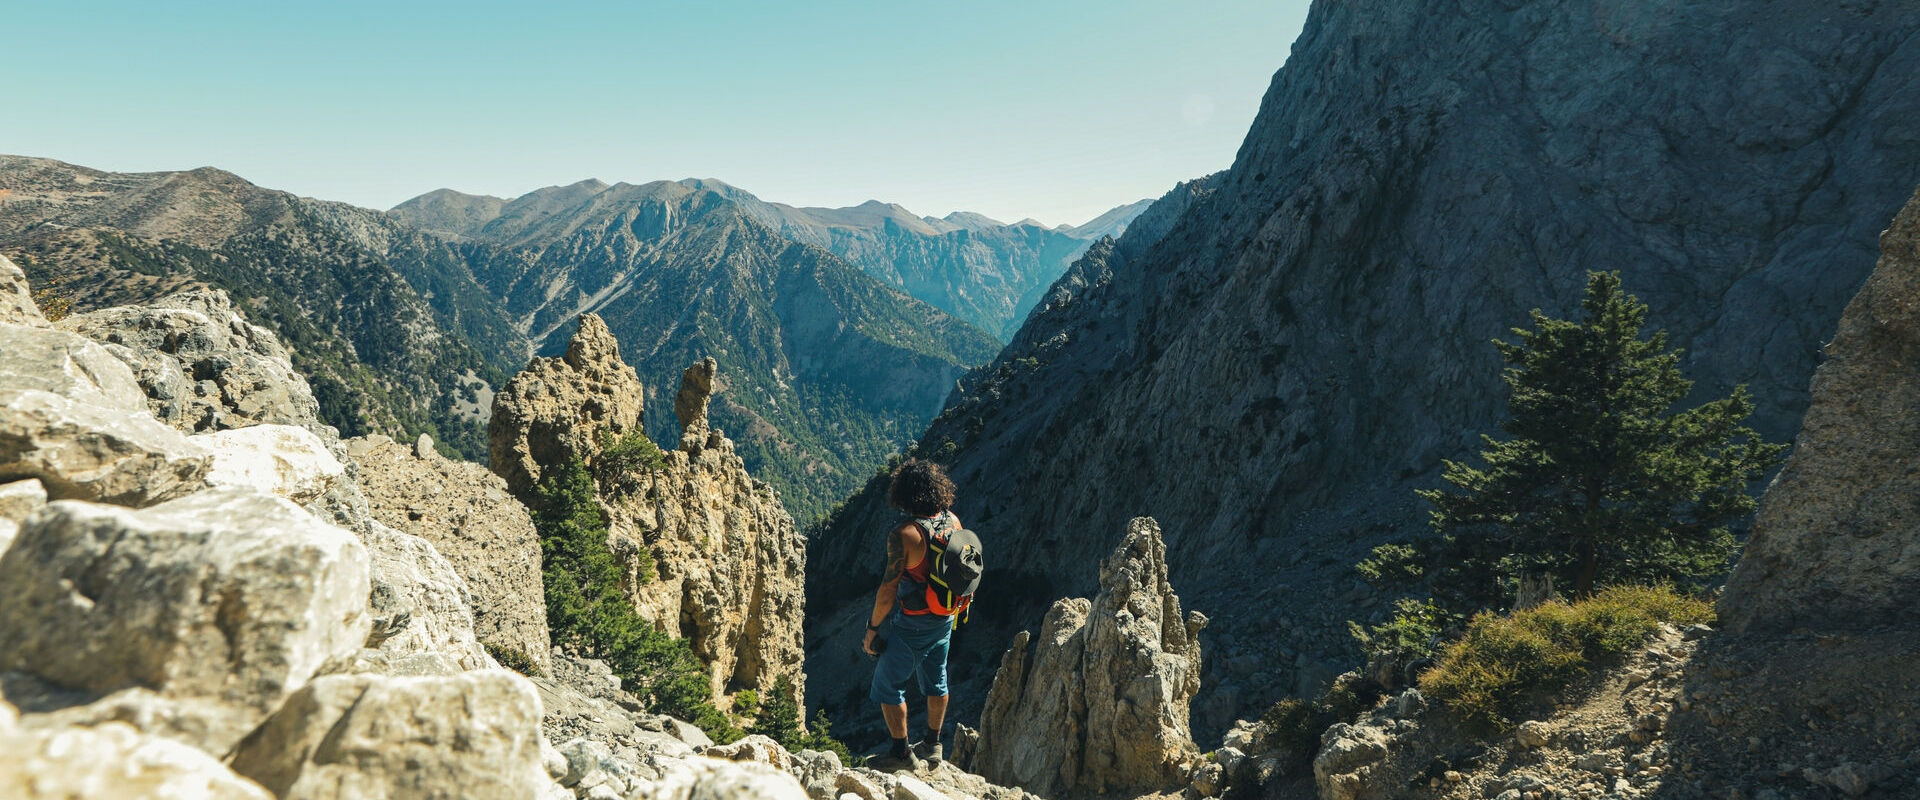 Hiking at Samaria gorge